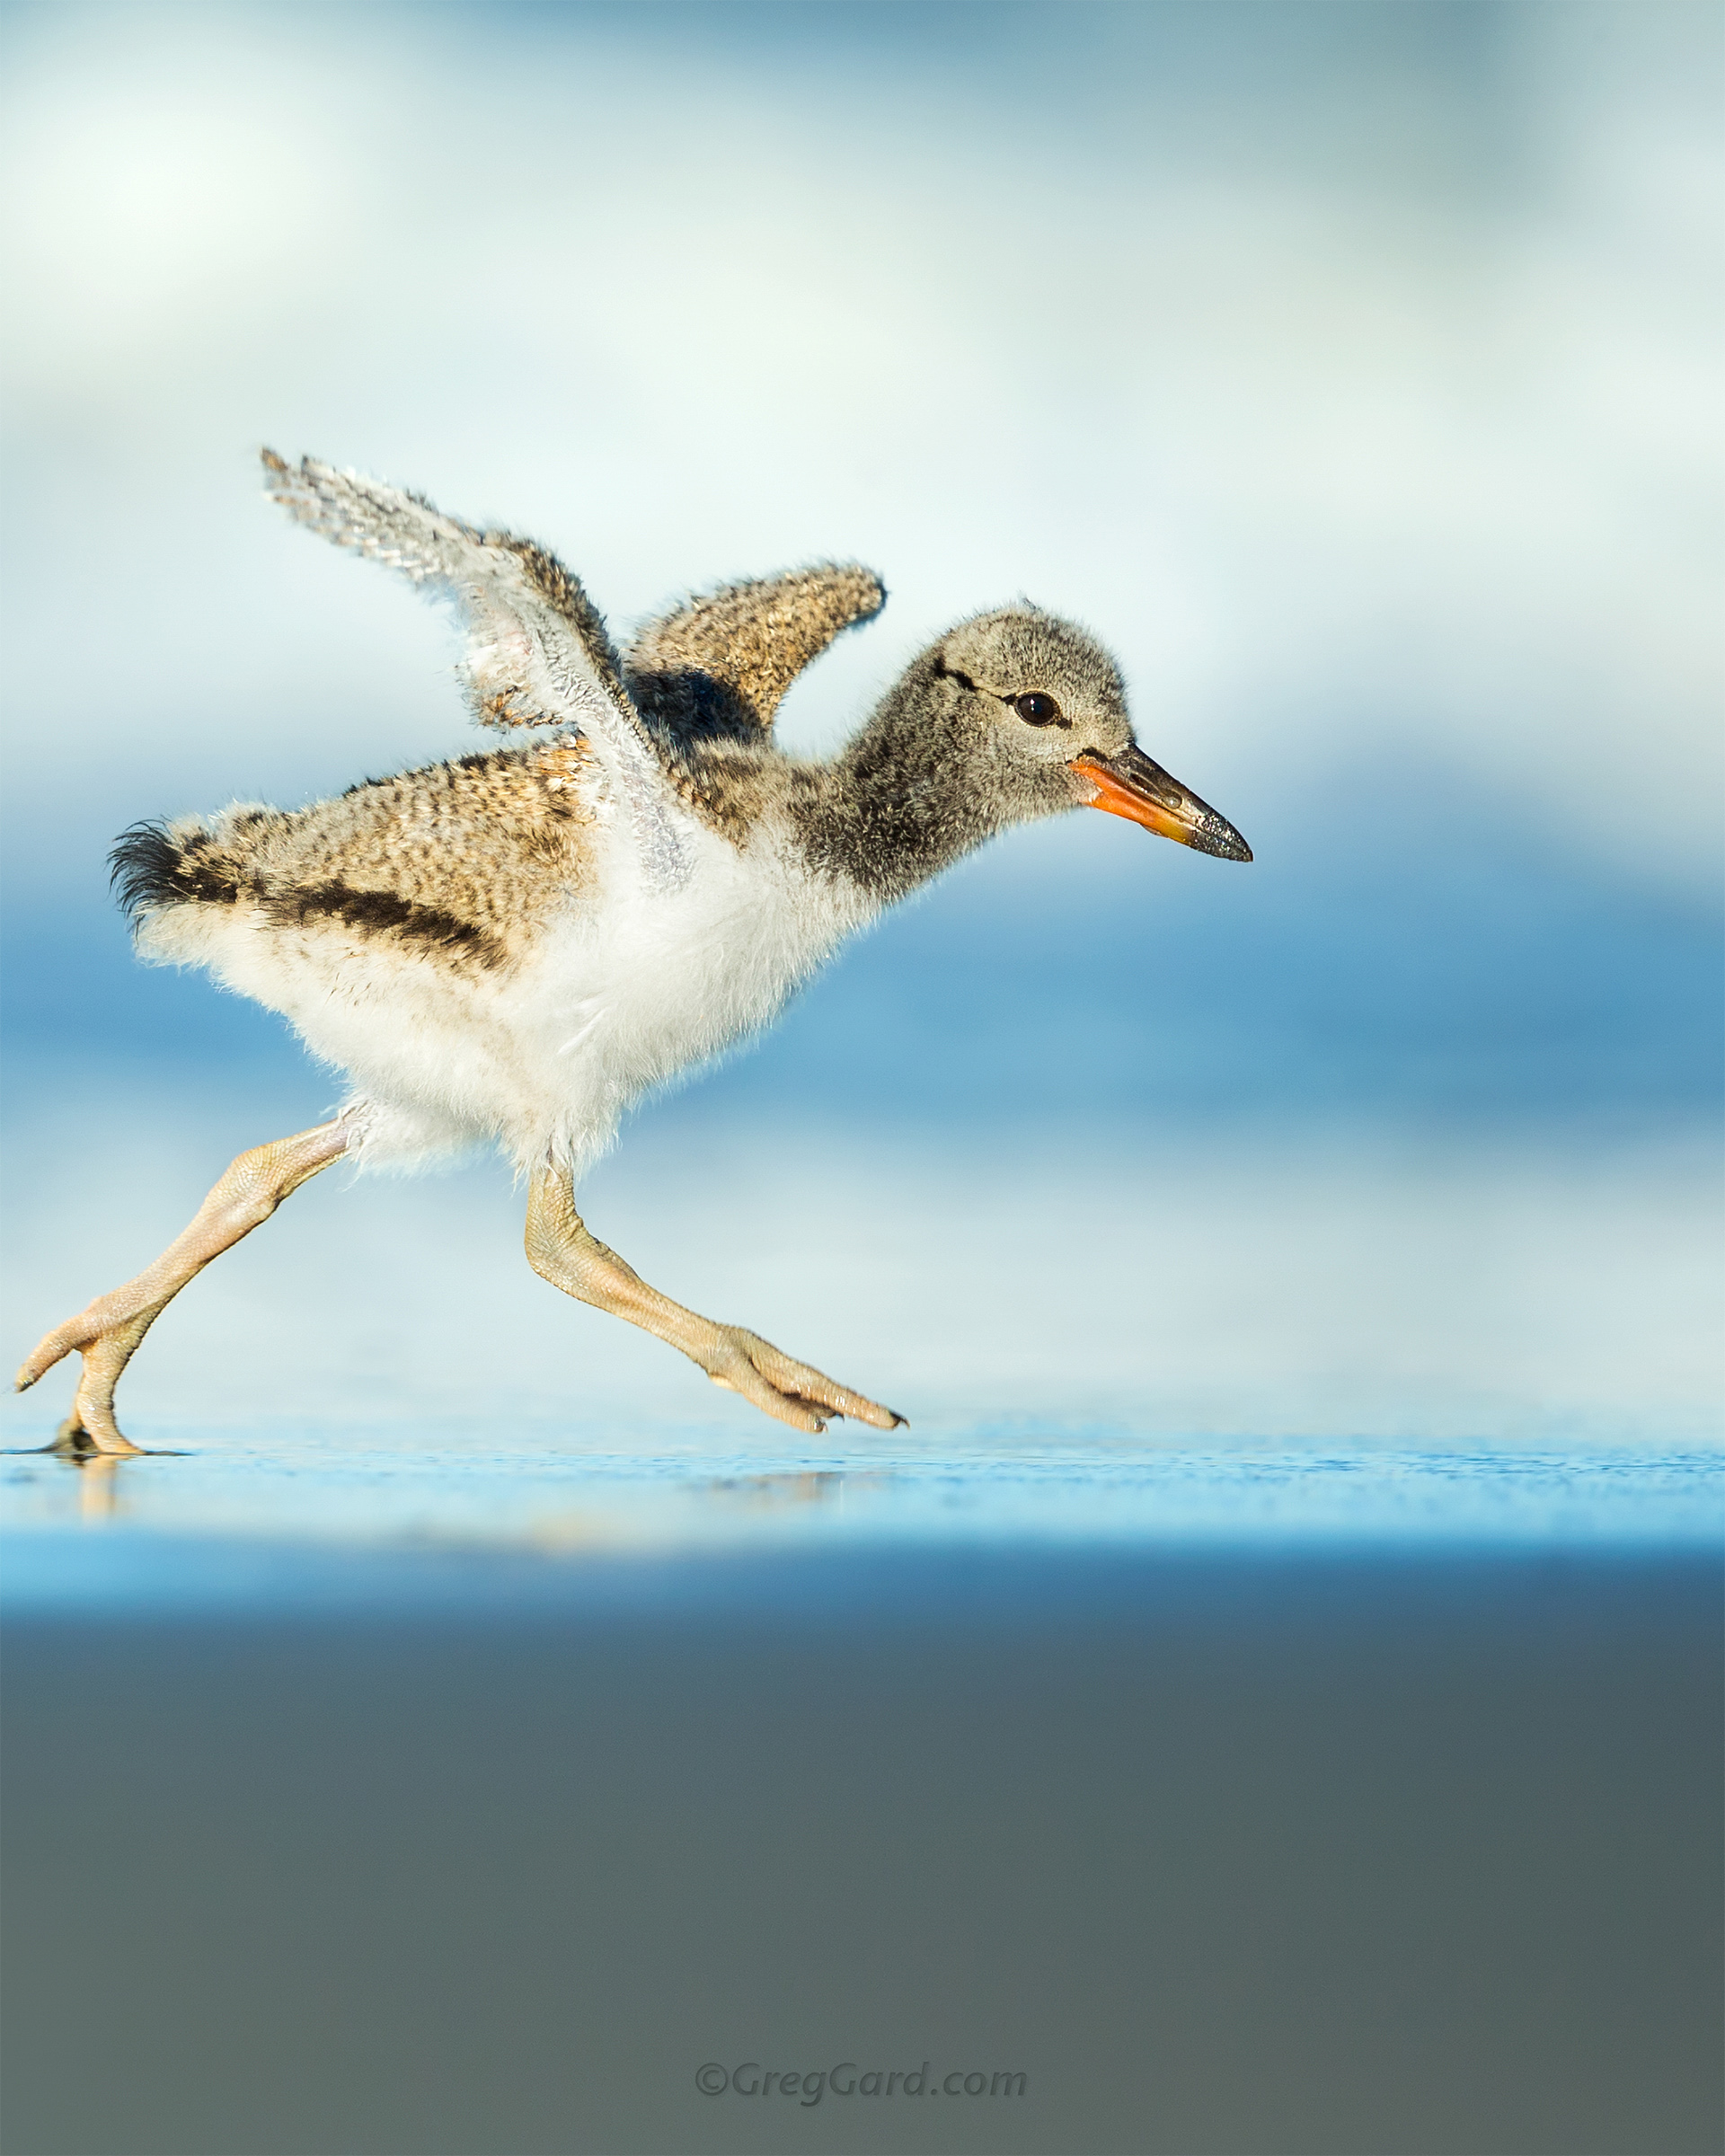 Young American Oystercatcher - Nickerson Beach, NY